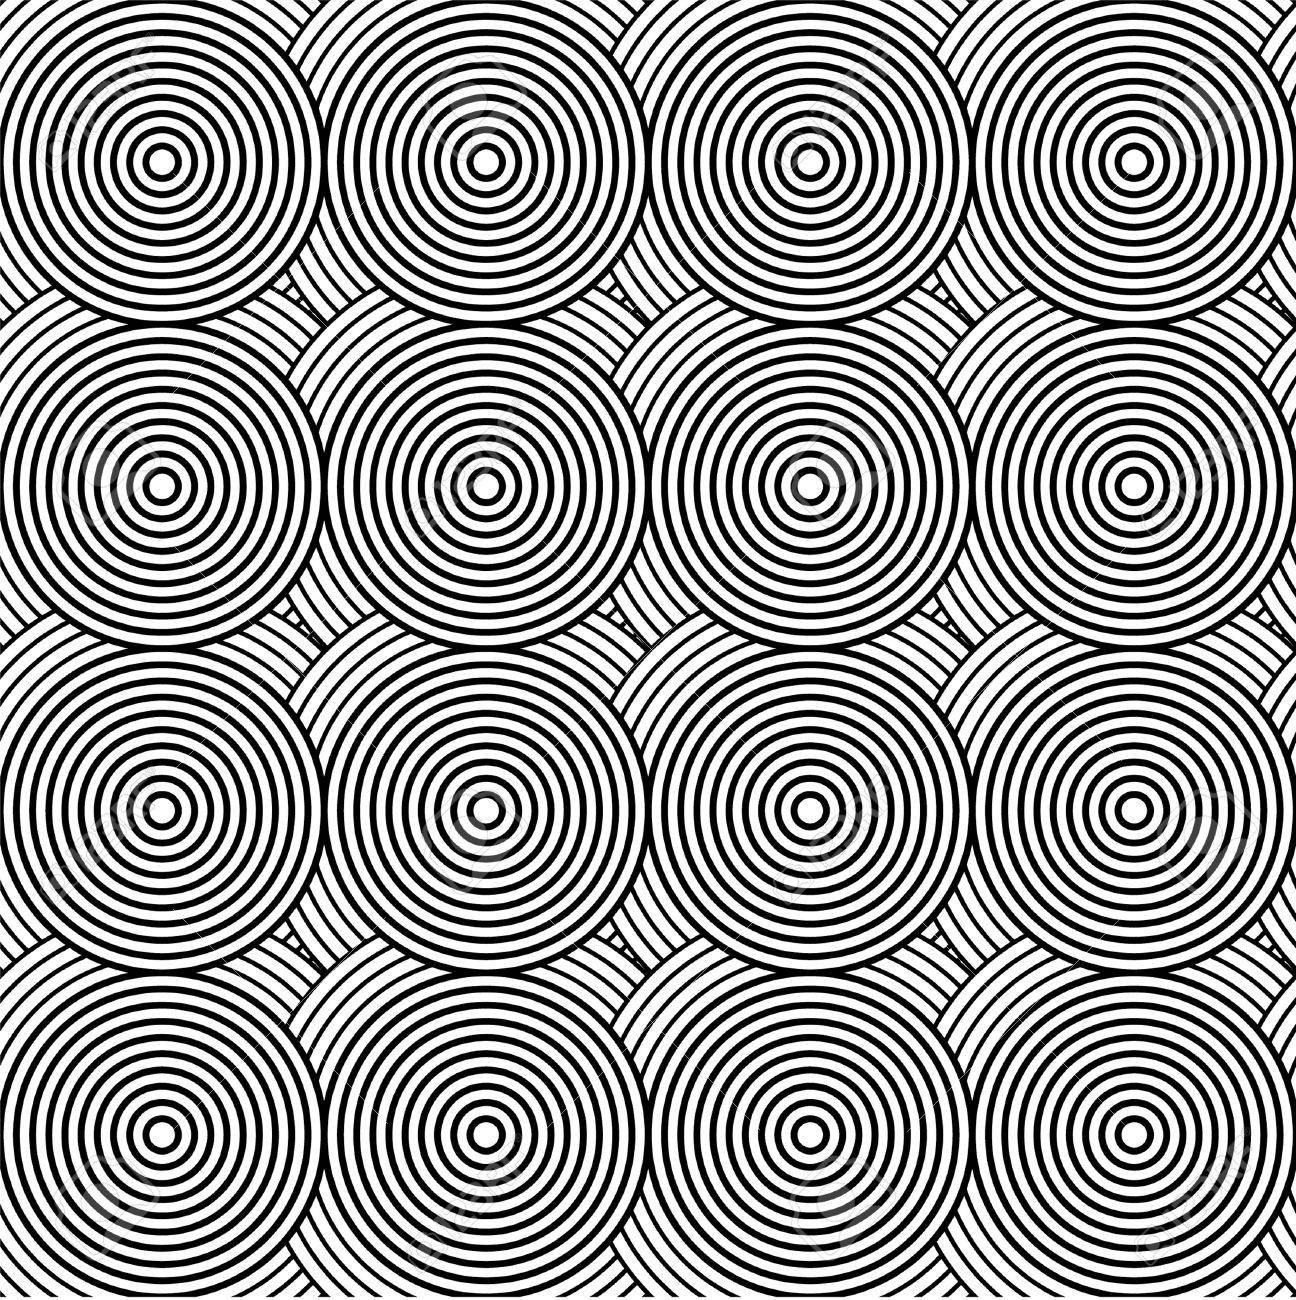 Pattern in with circle black and white Stock Vector - 15764324